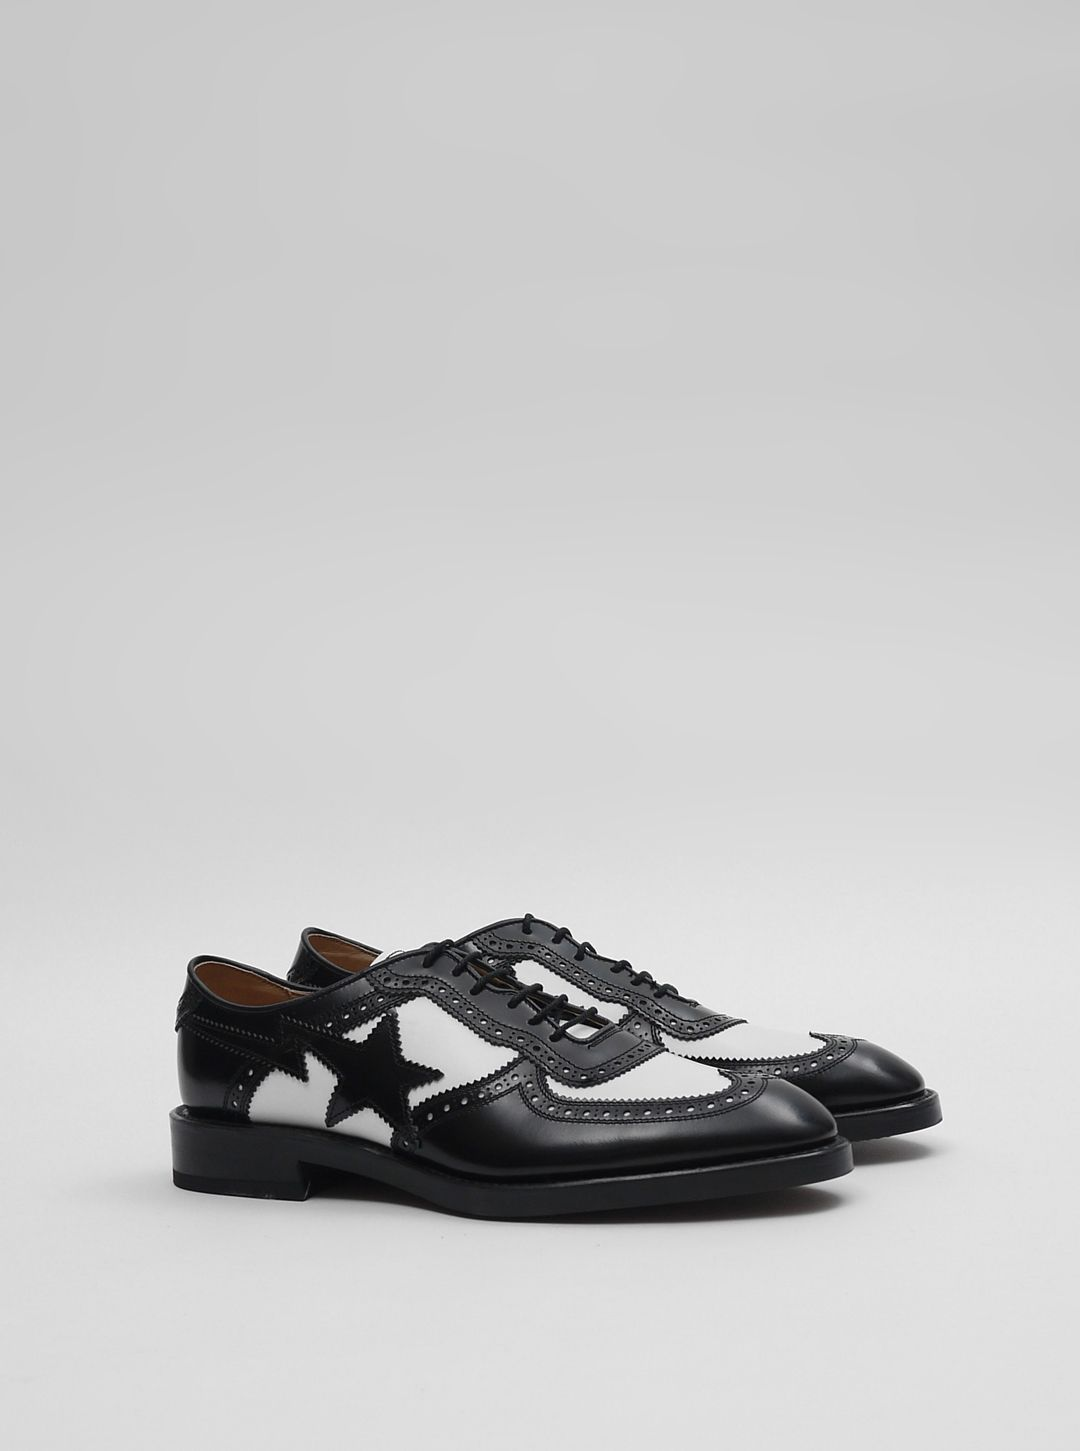 best loved dc51e fa81e Mr. Bathing Ape Bapesta Brogue Black Things I Need To Buy, Air Max Sneakers